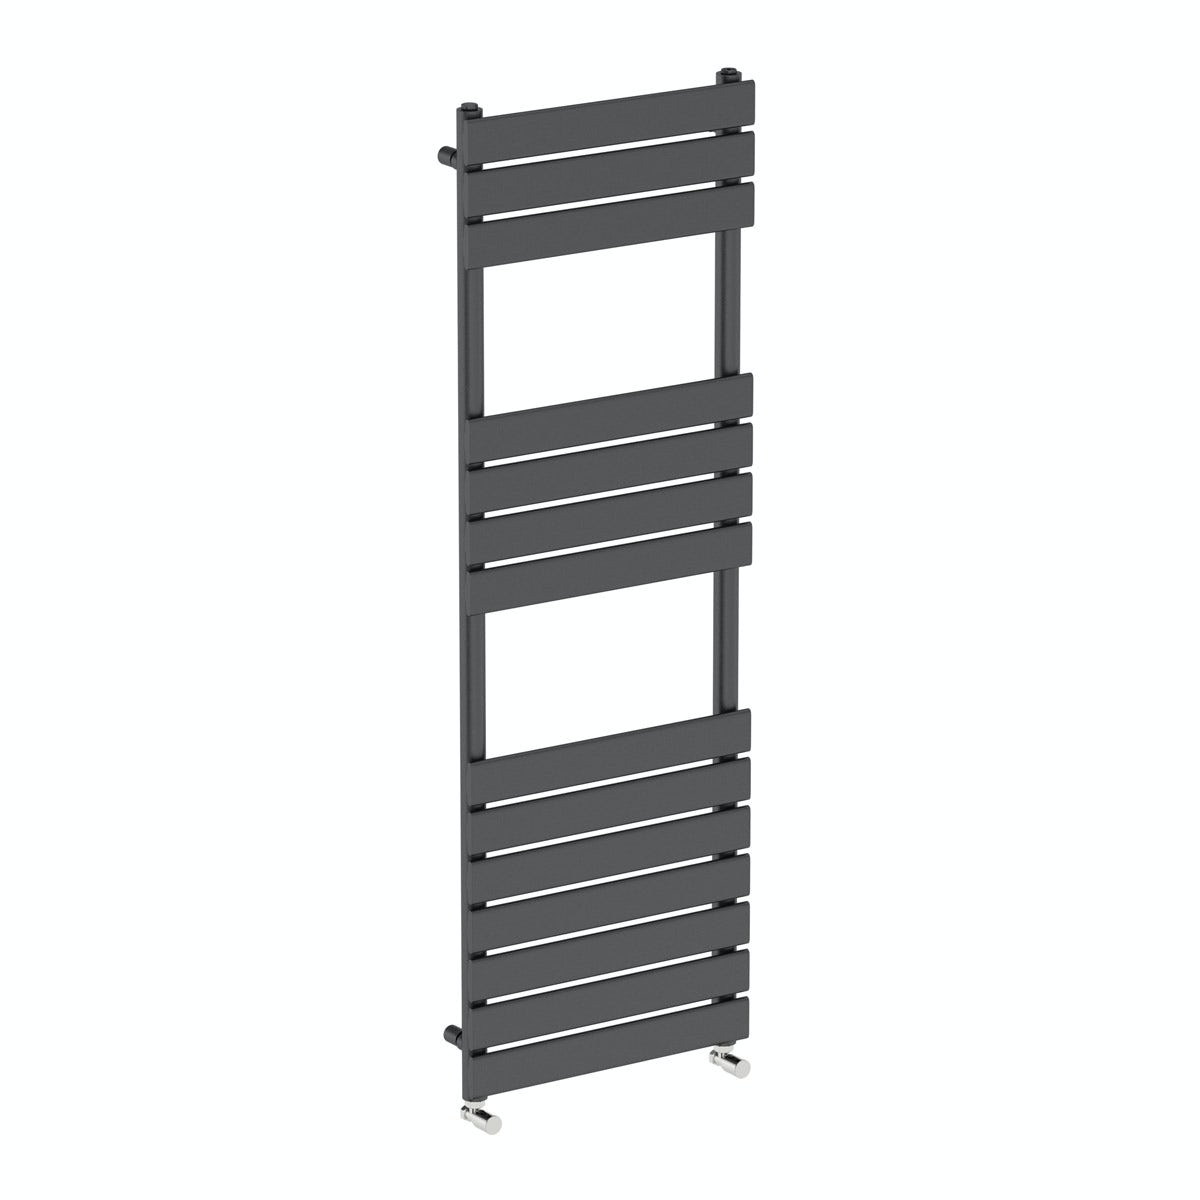 Orchard Wharfe anthracite heated towel rail 1500 x 500 offer pack